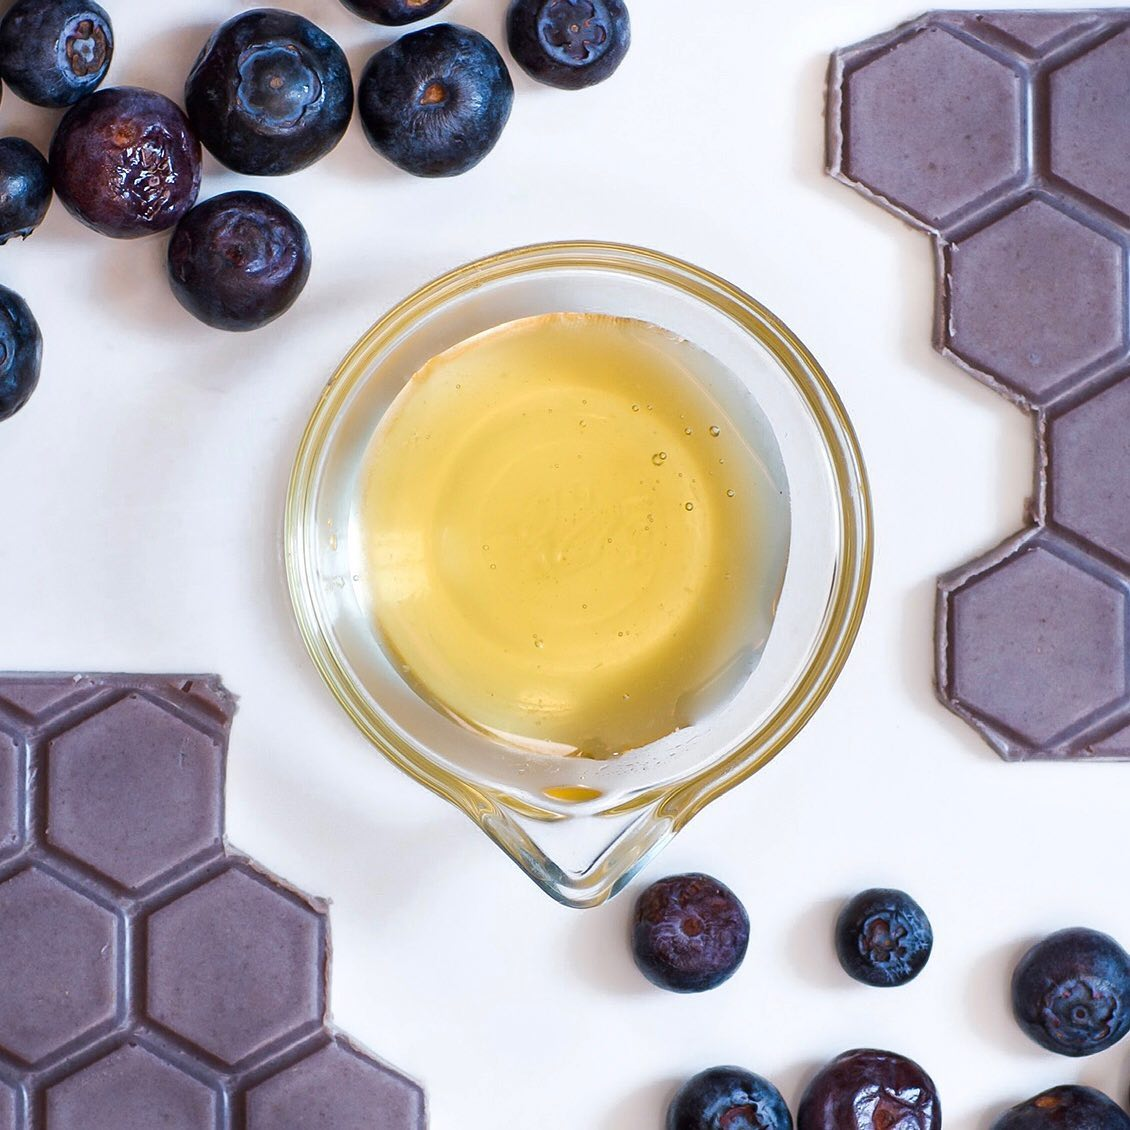 Honey, blueberries, and chocolate - instead of sugars and artificial sweeteners, Honeymoon Chocolates uses honey in their chocolate bars.